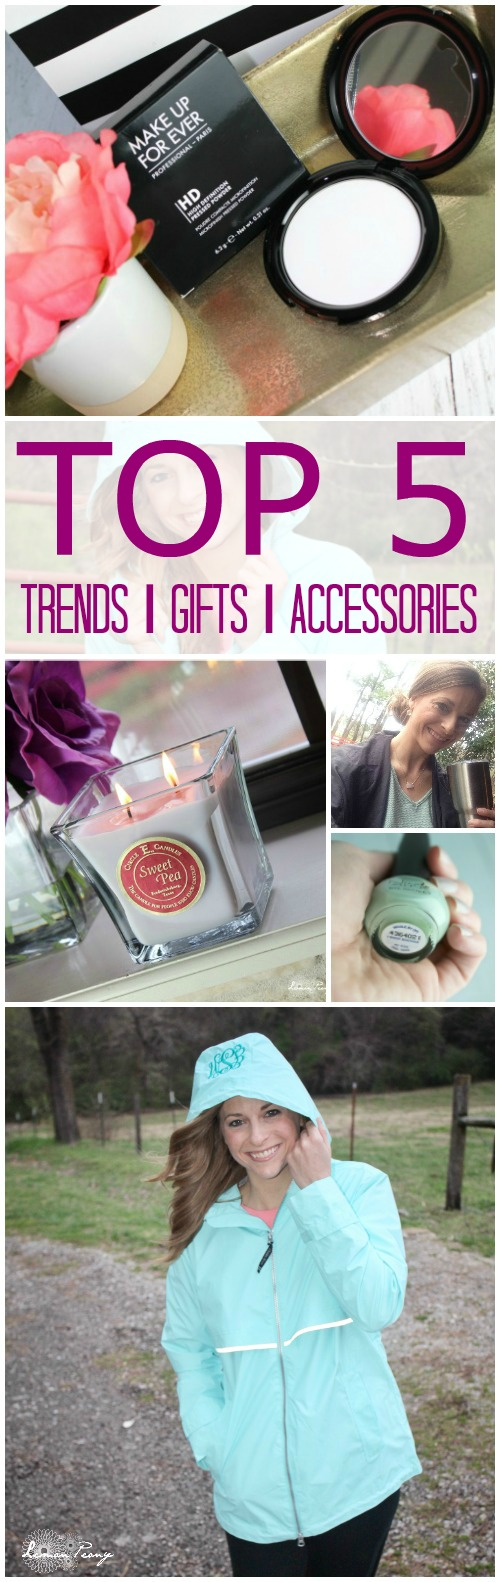 Top 5 Spring Gifts and Accessories